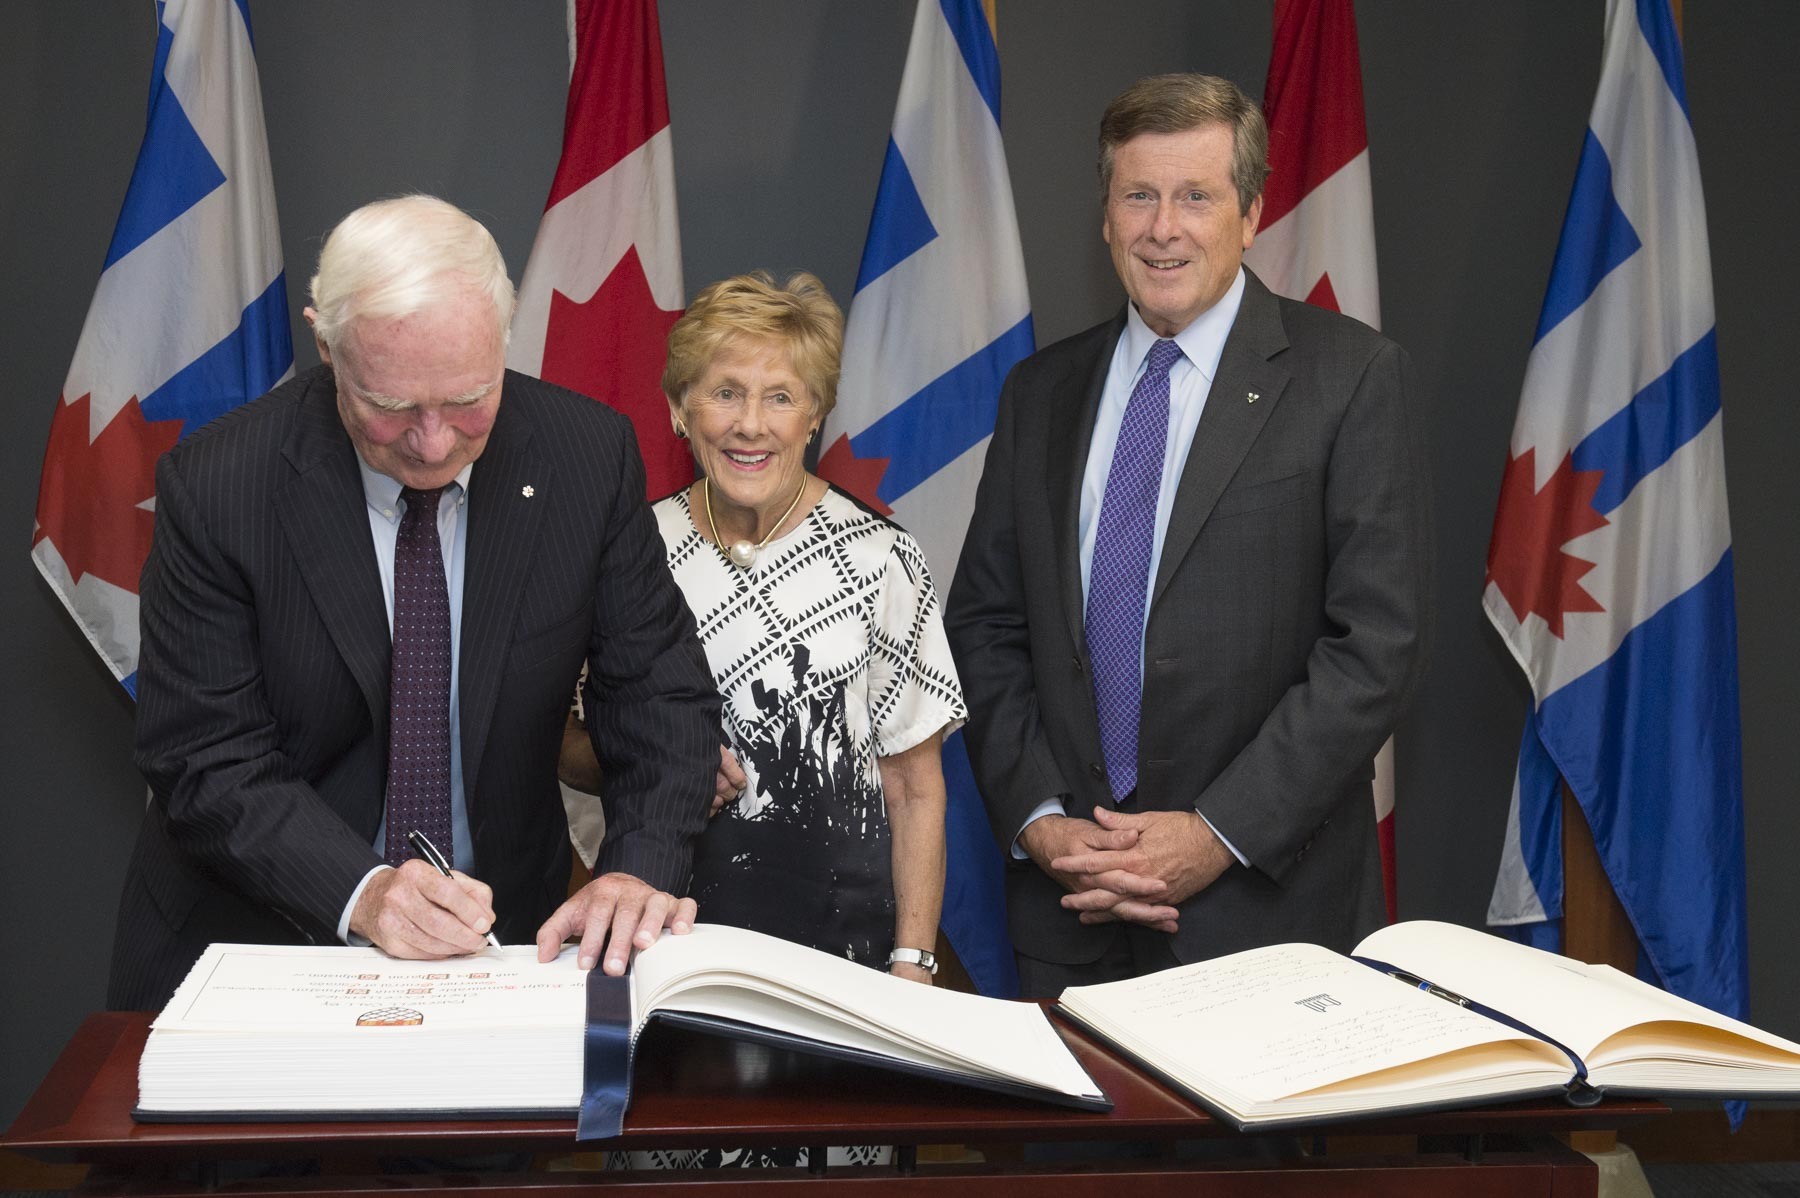 Their Excellencies signed the city of Toronto's guest book.